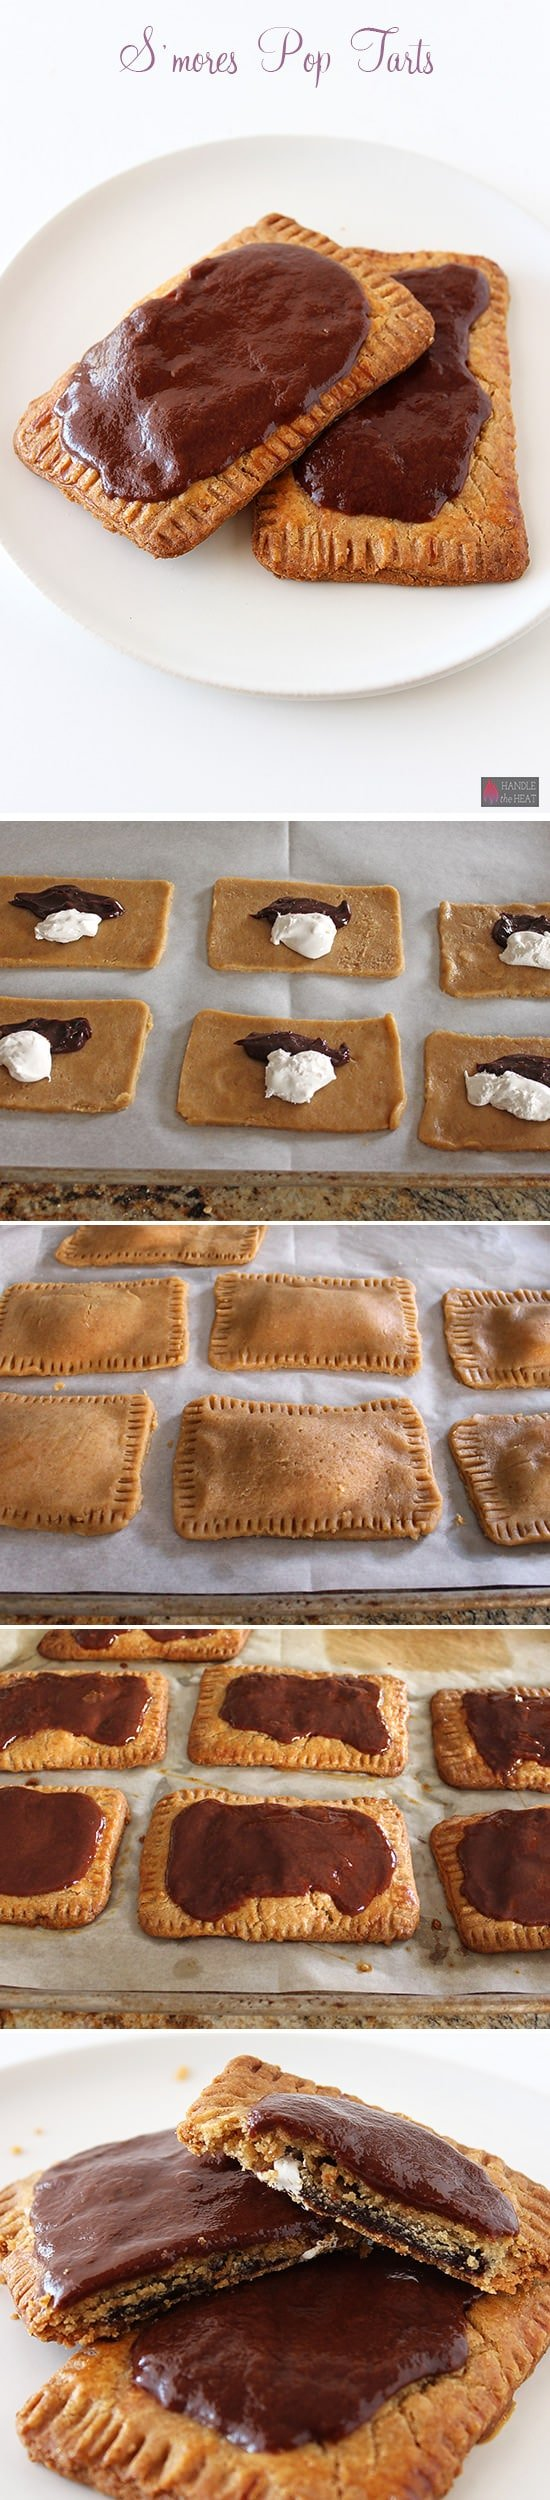 Homemade S'mores Pop Tarts - Amazing!